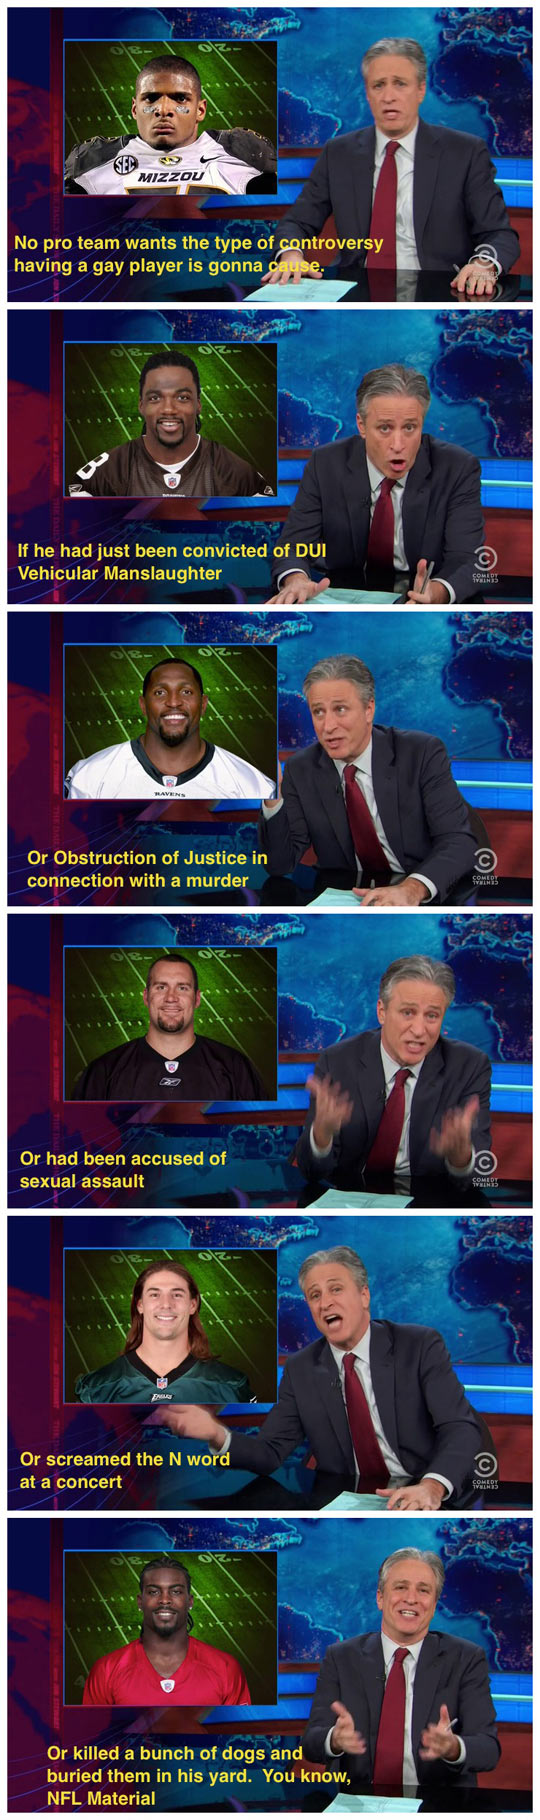 funny-John-Stewart-NFL-controversy